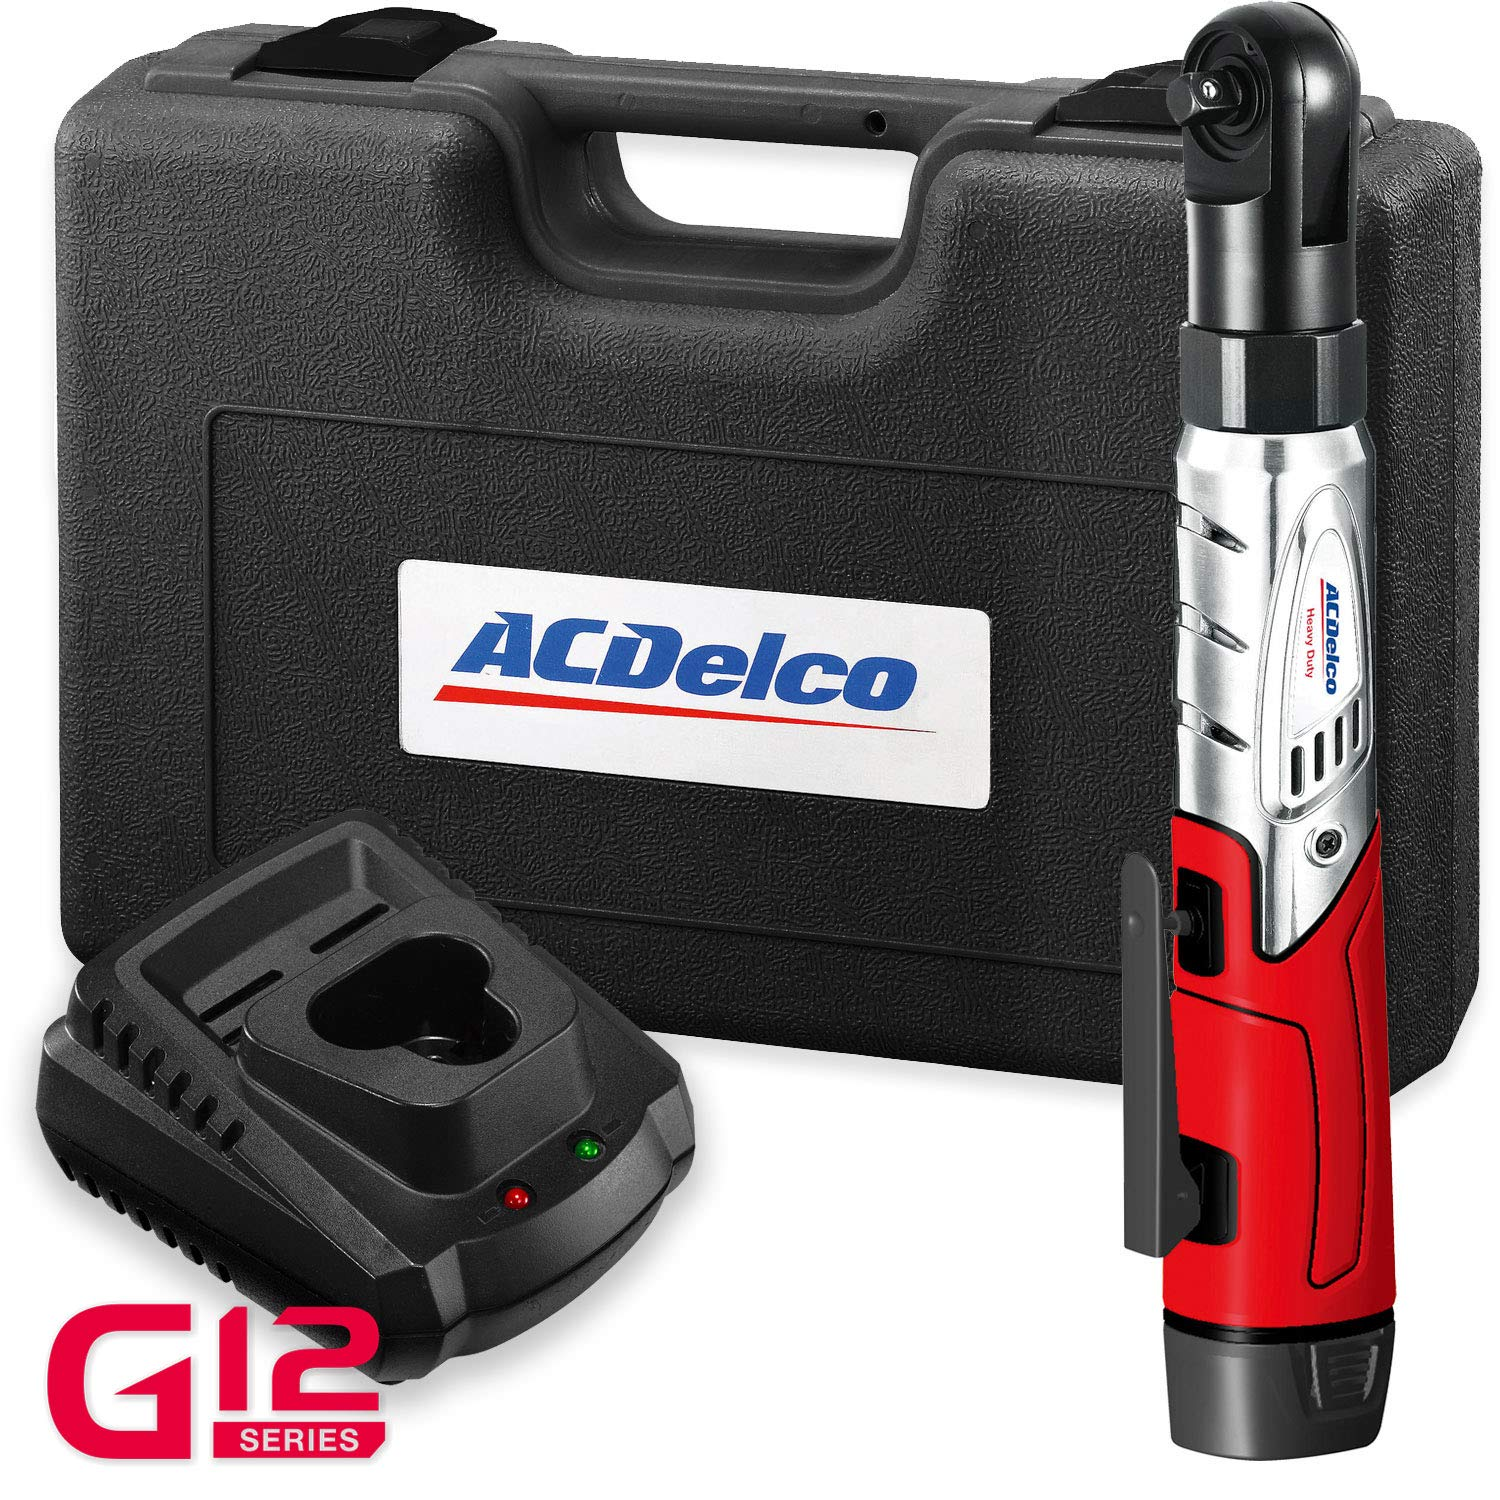 ACDelco Cordless 3/8'' Ratchet Wrench 12V Angled 55 ft-lb Tool Set with 1 Li-ion Batteries - Regular Charger - Carrying Case